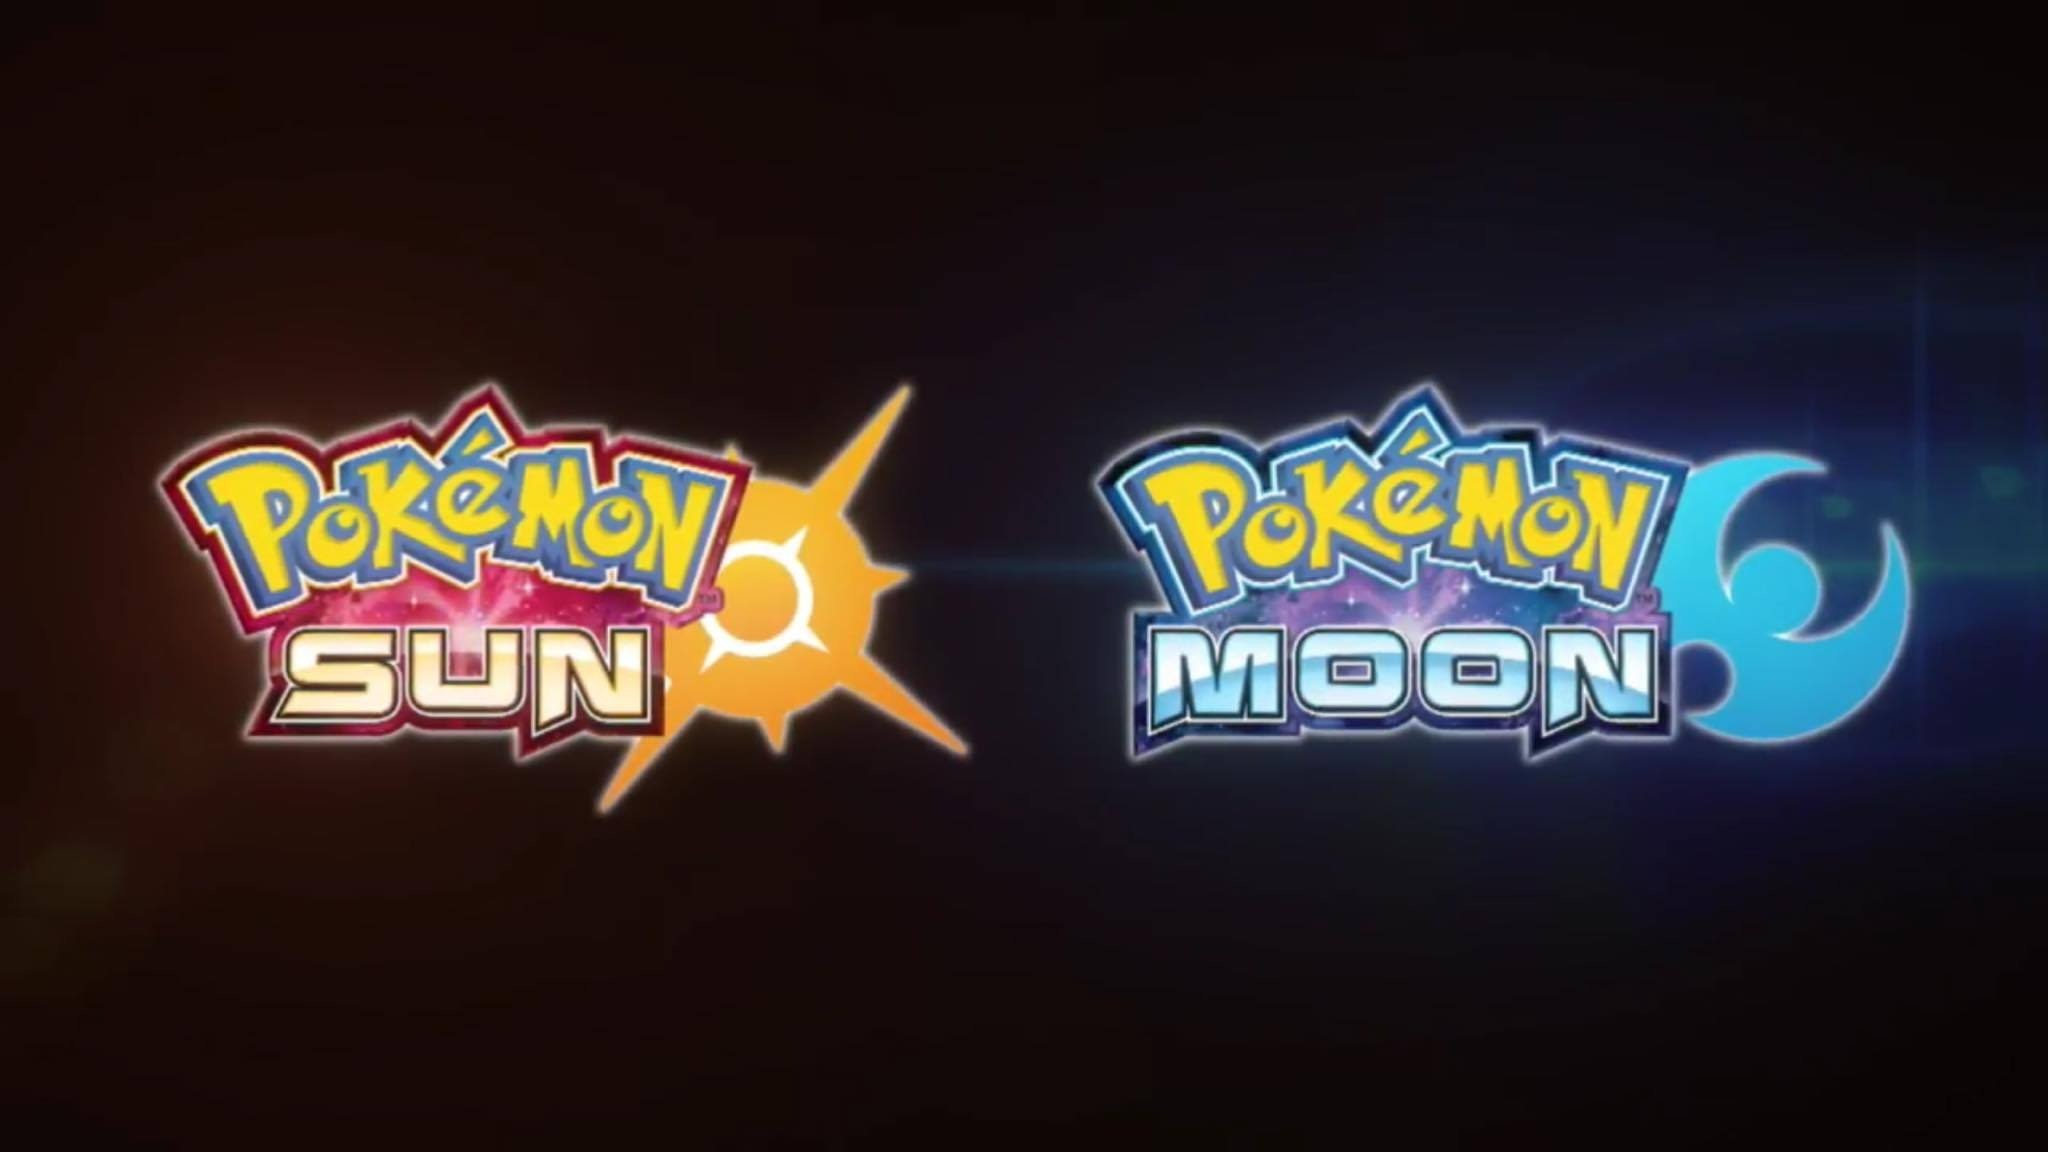 2048x1152 ... Pokemon Sun and Pokemon Moon Discussion ...